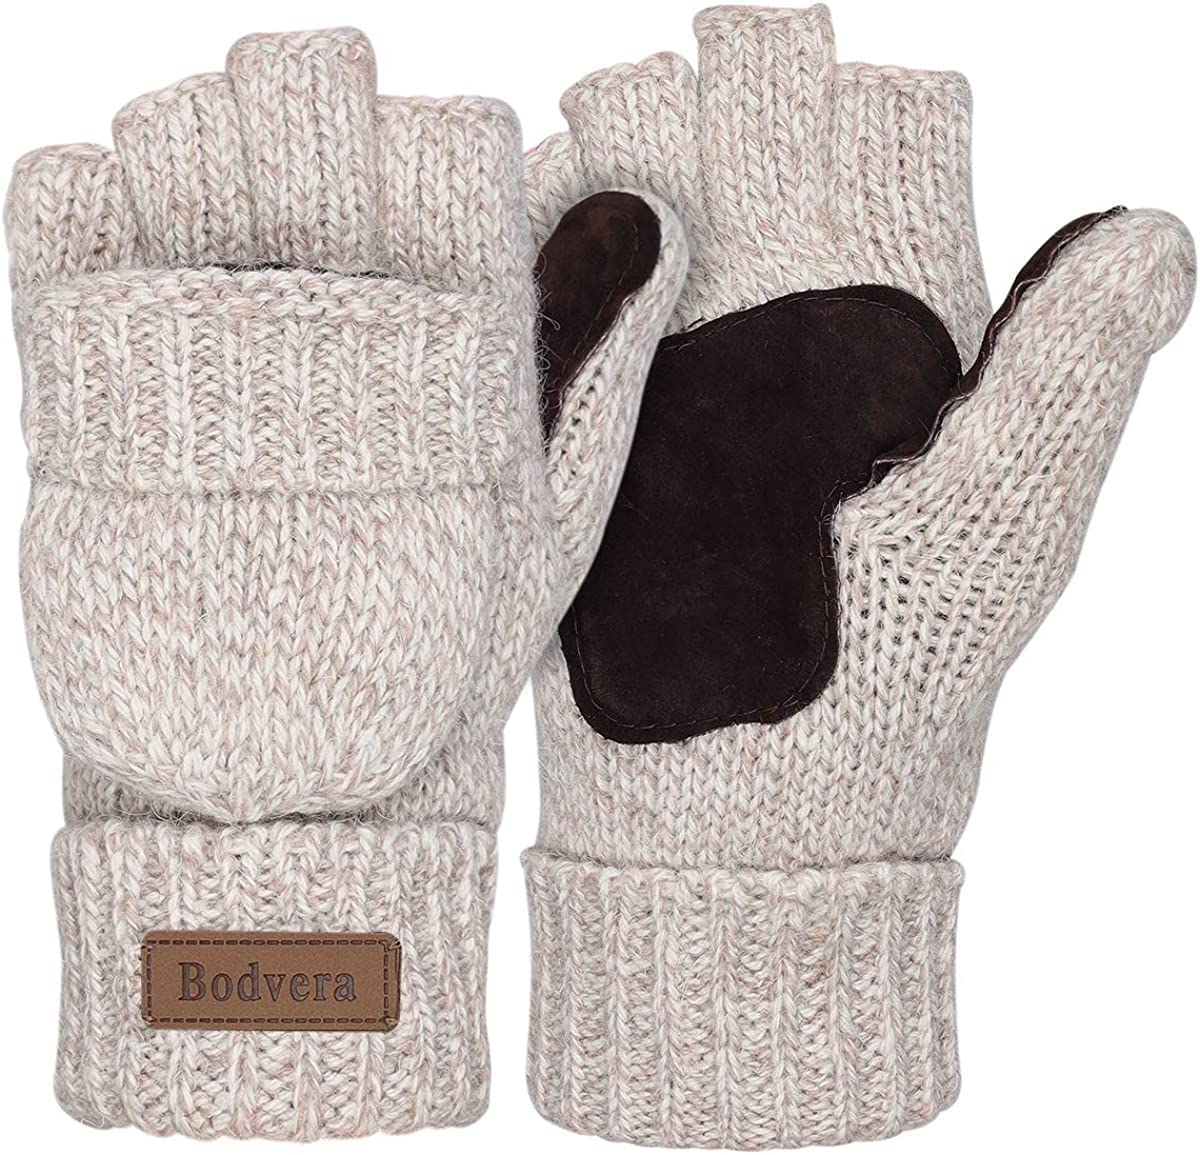 Bodvera Thermal Insulation Fingerless Texting Wool Gloves Unisex Winter Warm Knitted Convertible Mittens Flap Cover